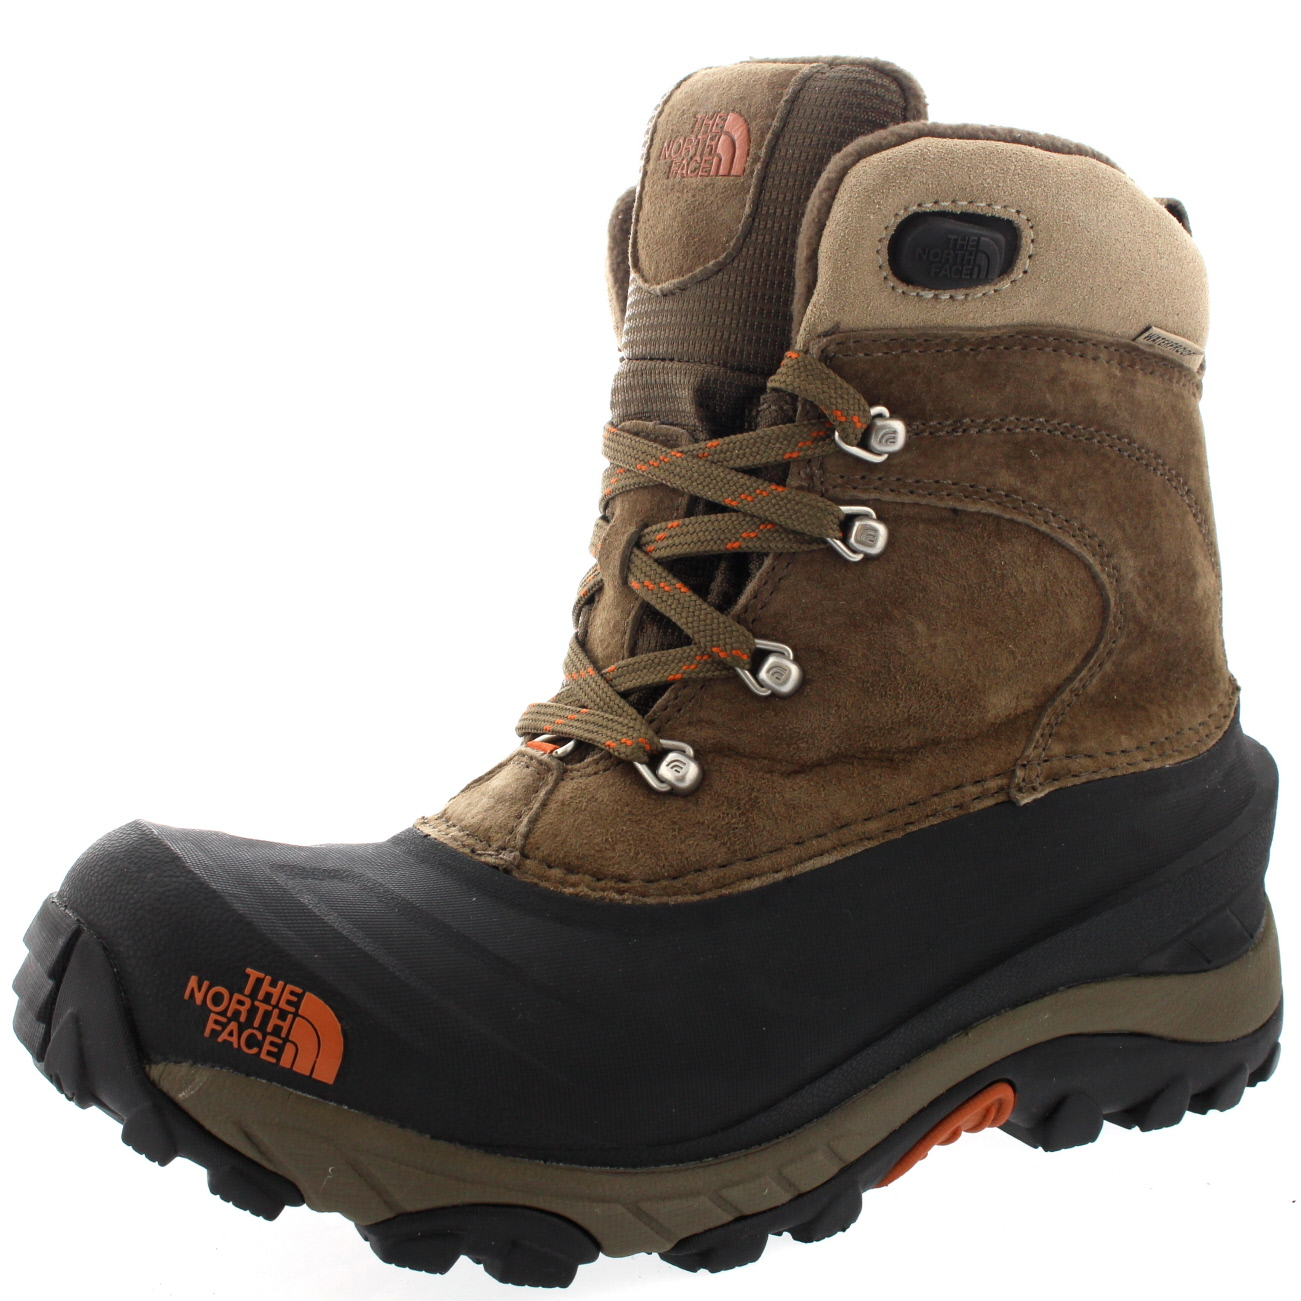 The North Face Chilkat Ii Boots Snow Shoes Black Mens